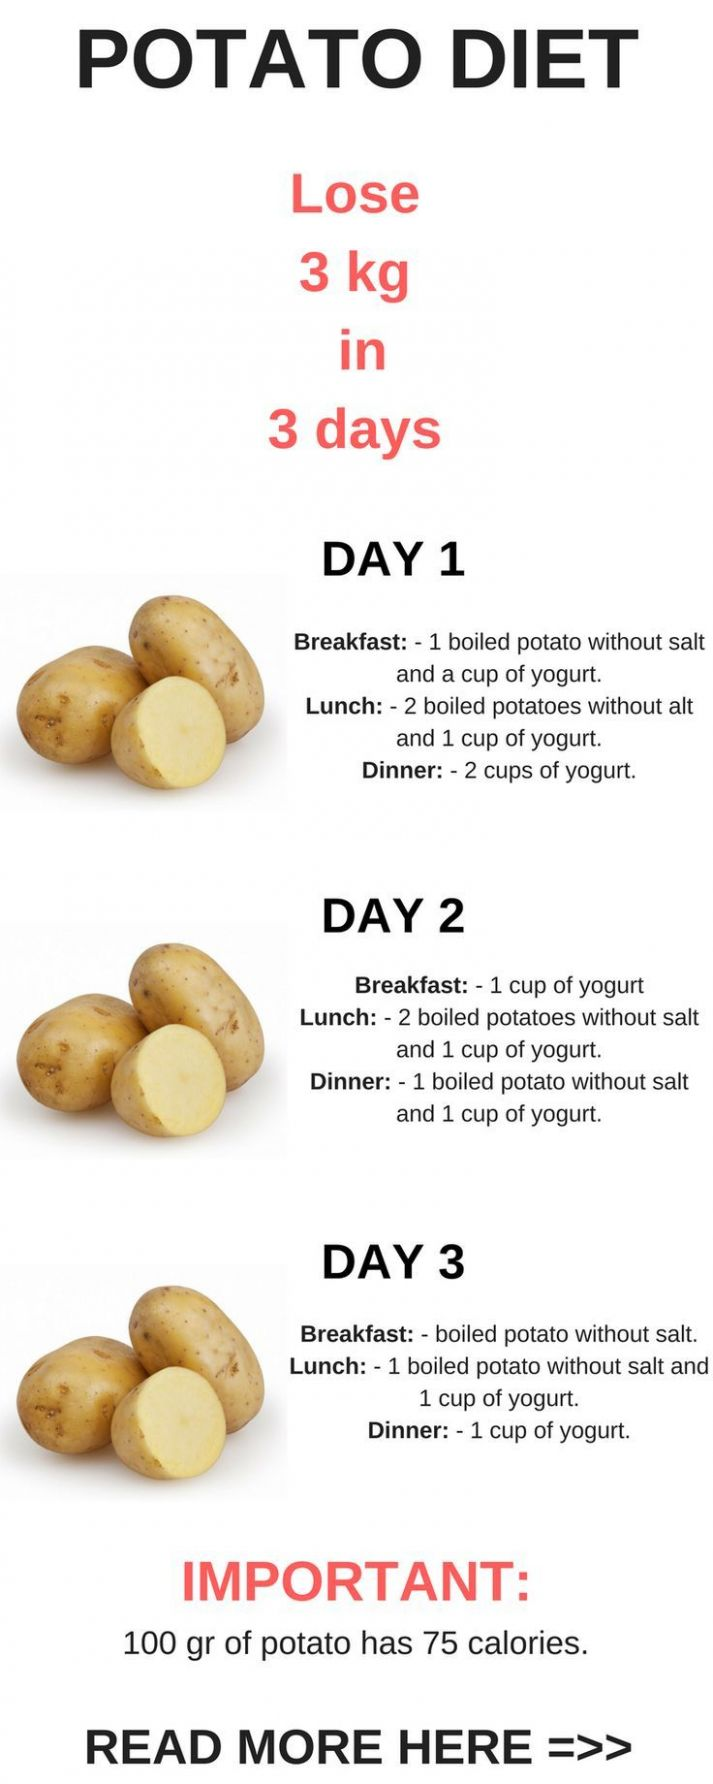 Flawless Potato Diet: Lose 12 Kg In 12 Days Only! | Potato diet, Egg ...